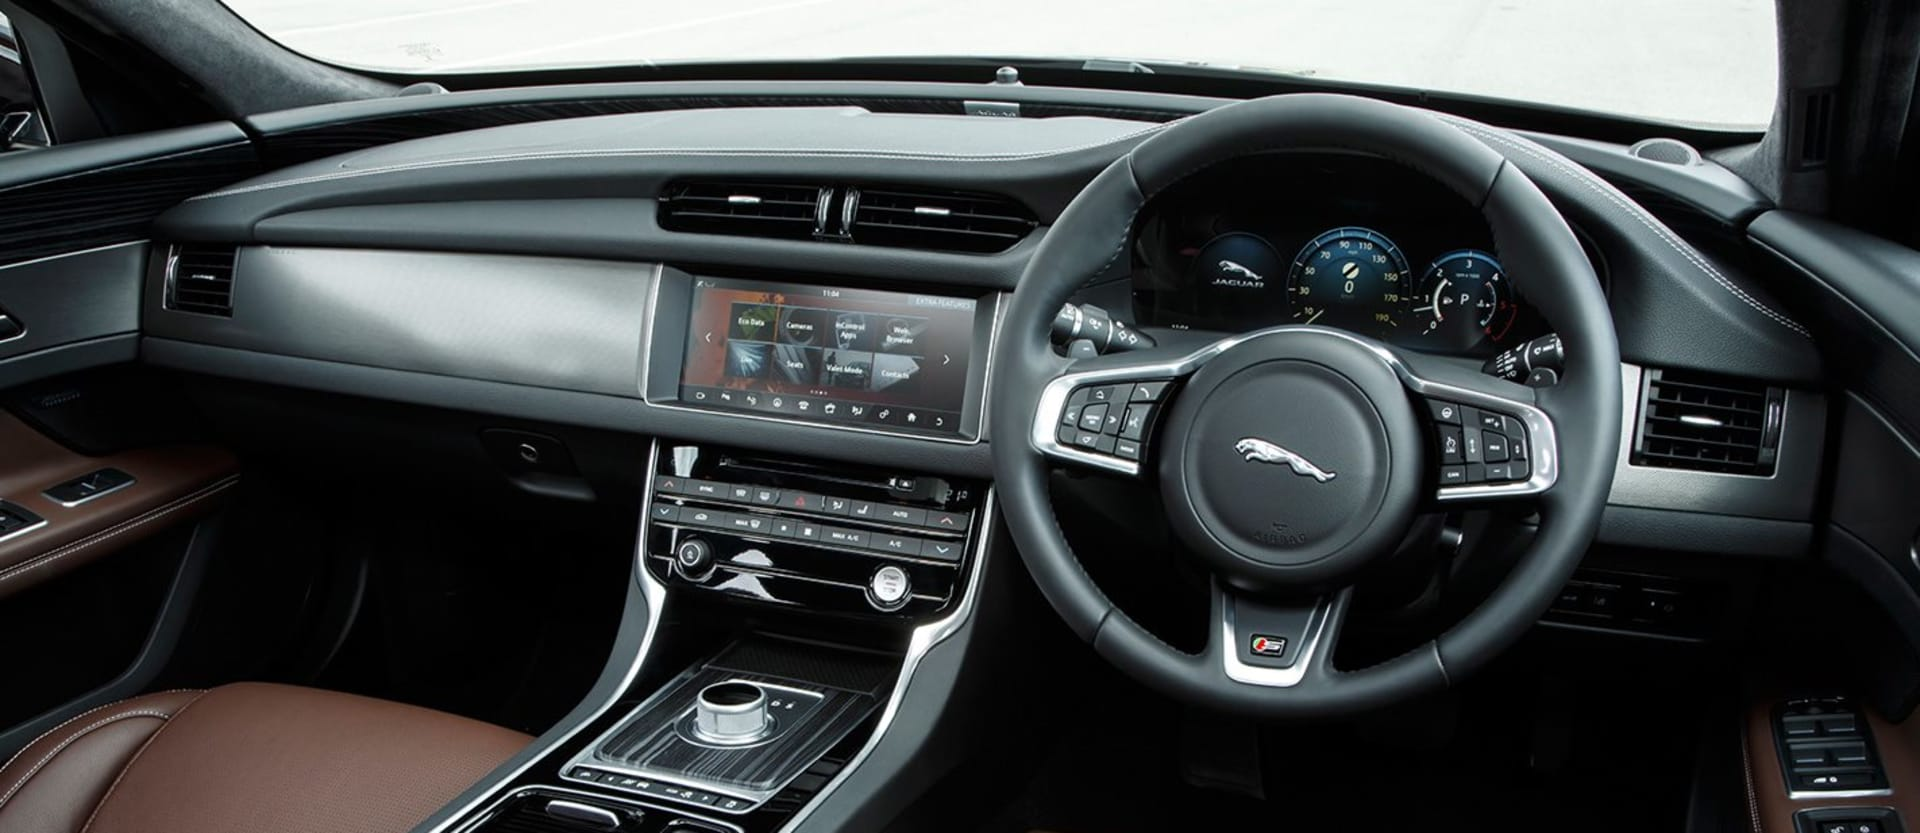 Jaguar's New Touch Screen Technology